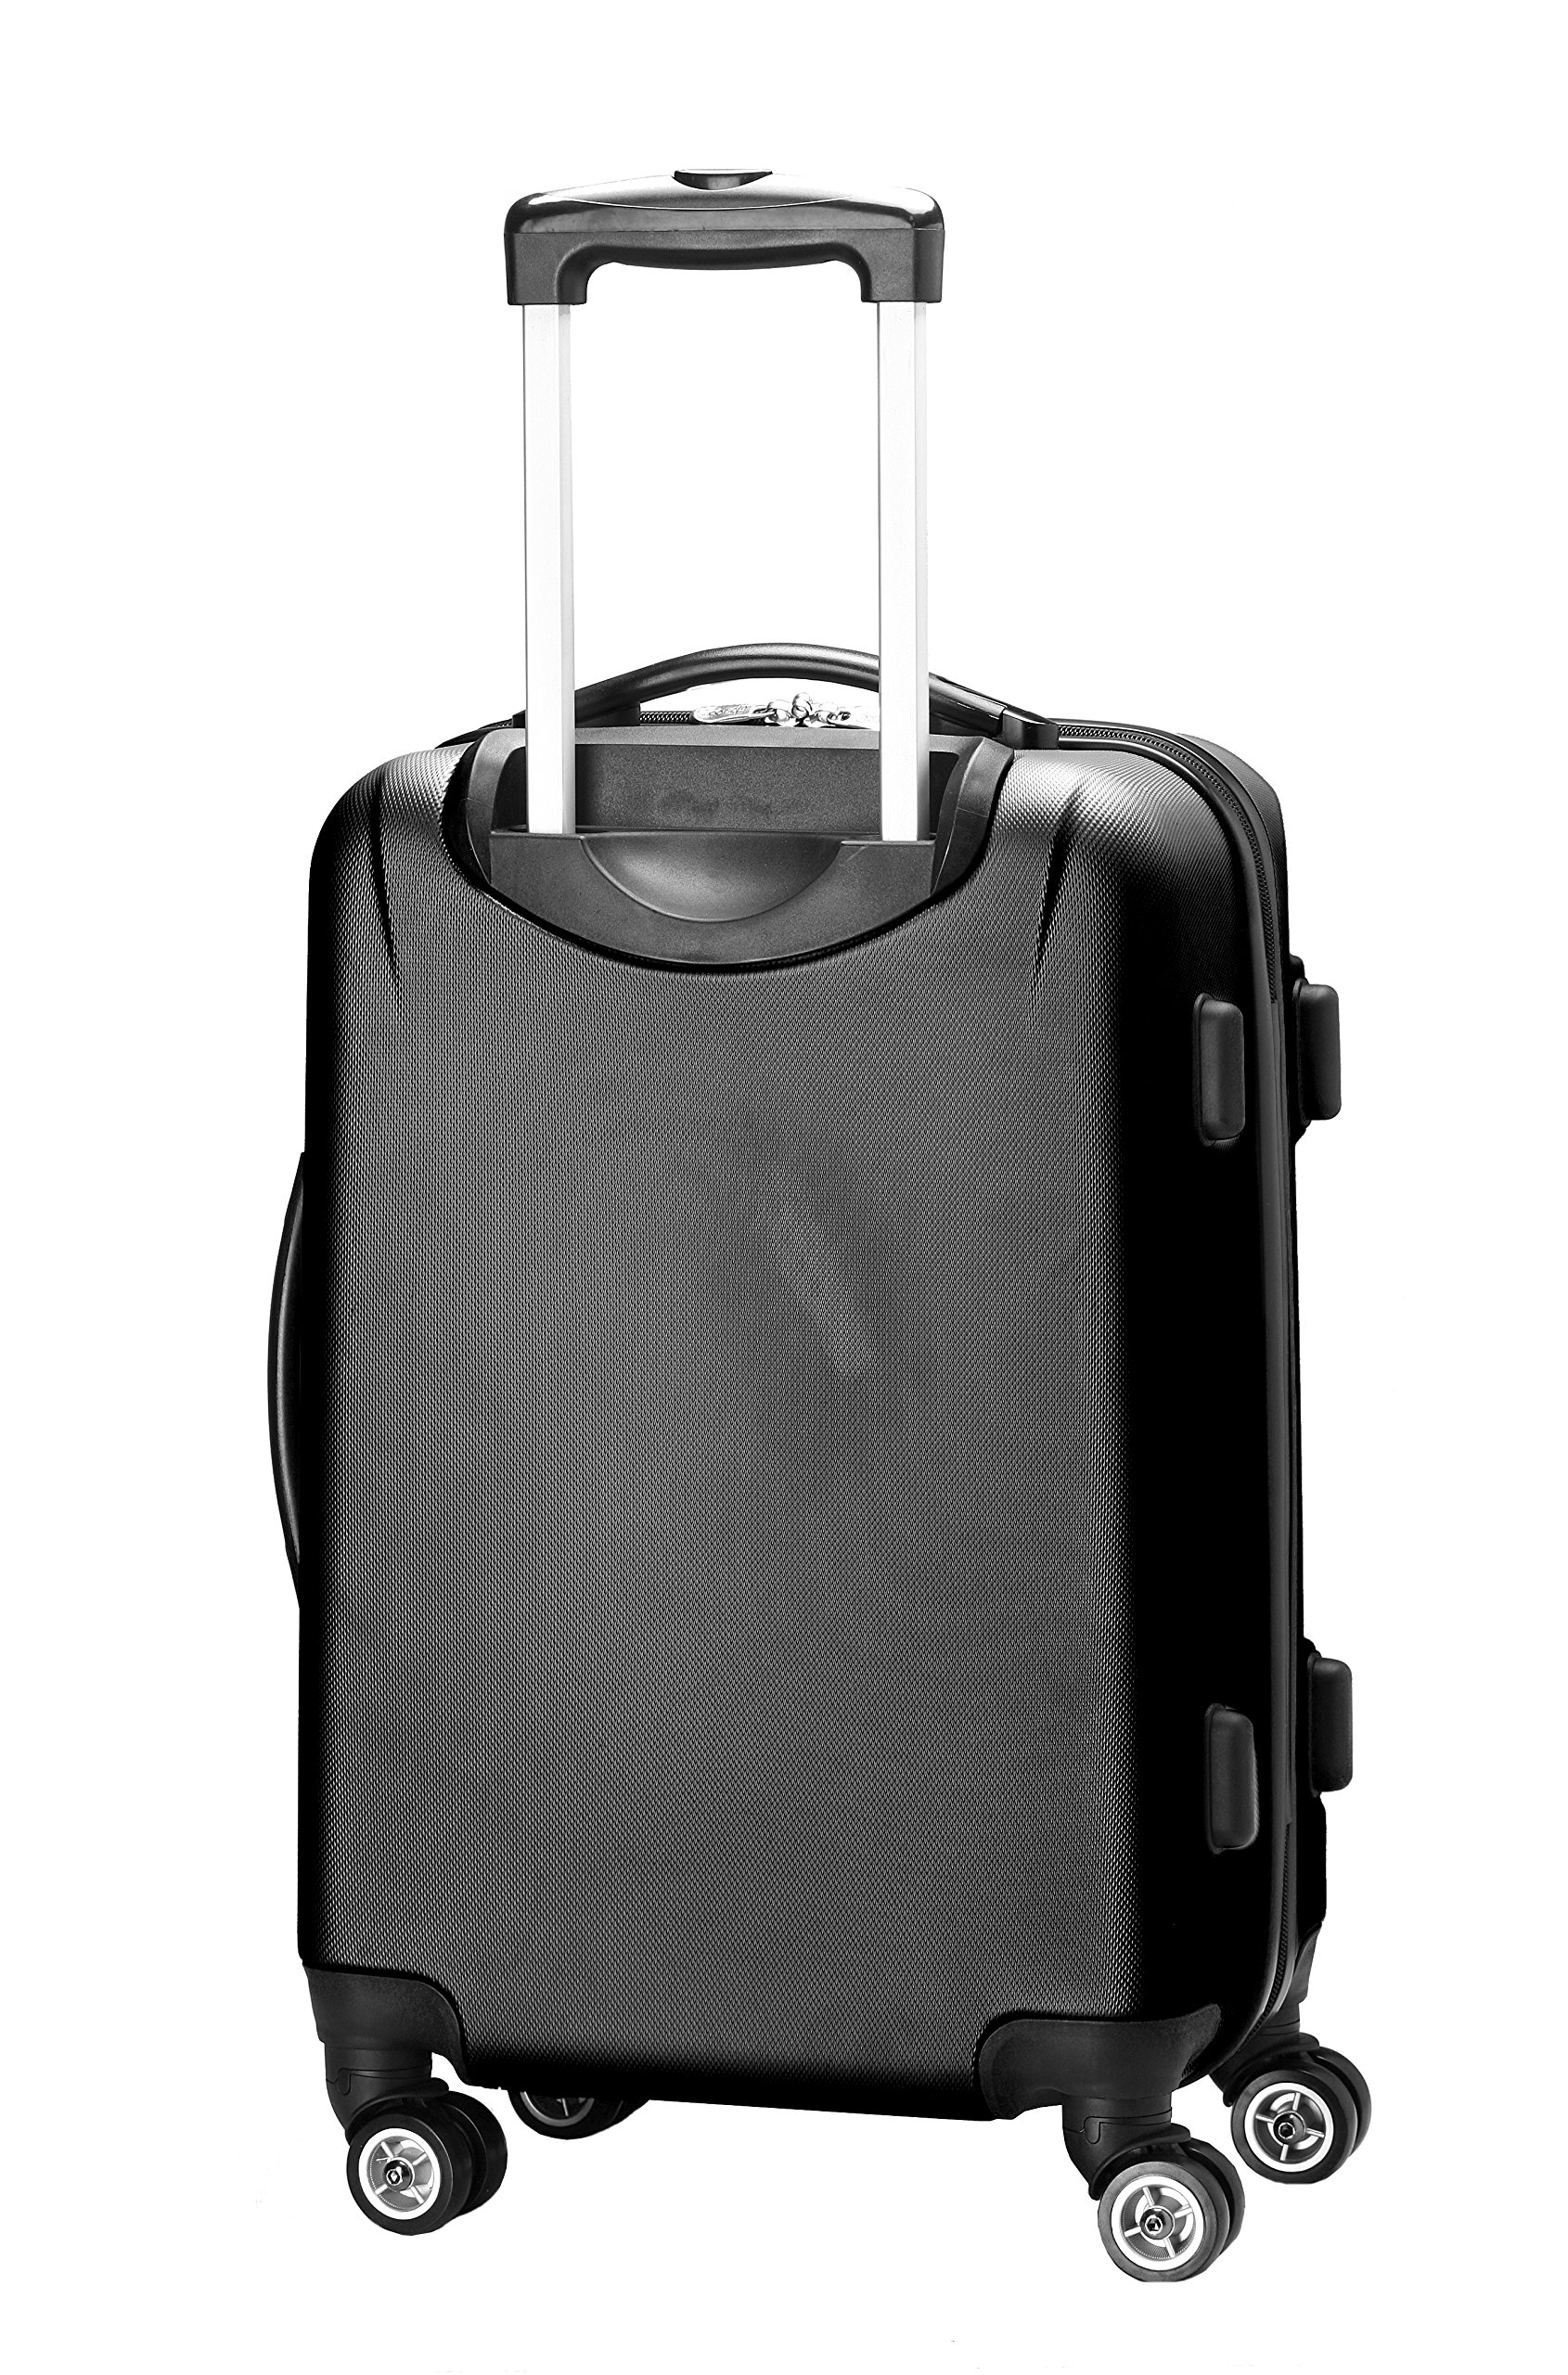 Denco NBA Houston Rockets Carry-On Hardcase Luggage Spinner, Black by Denco (Image #5)